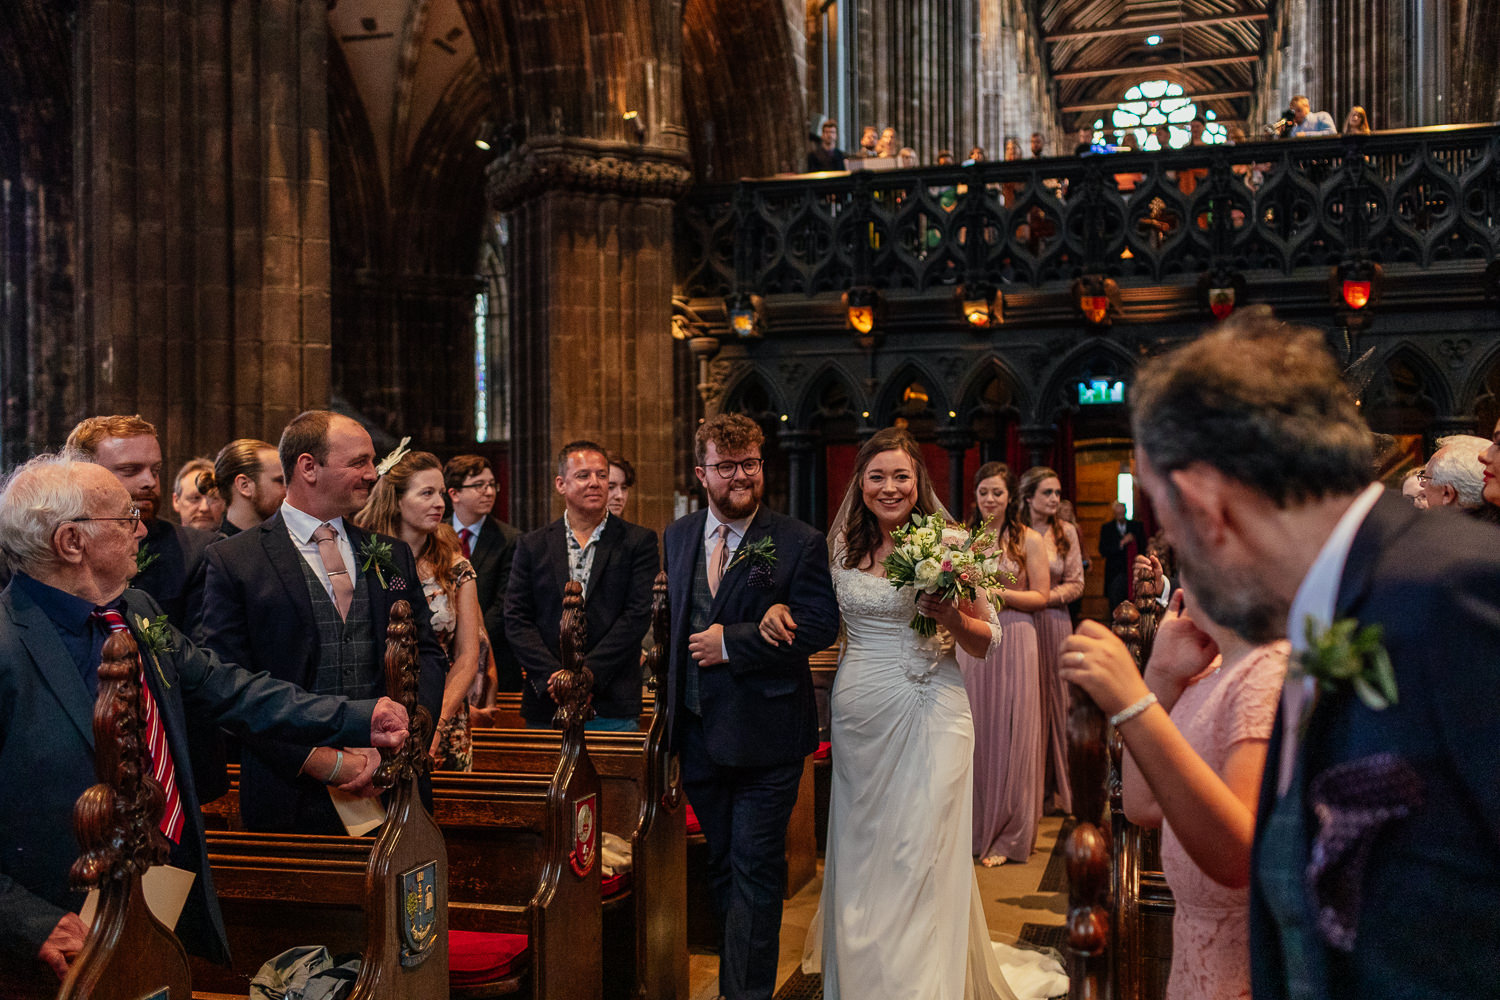 Glasgow Cathedral wedding bride walking down aisle